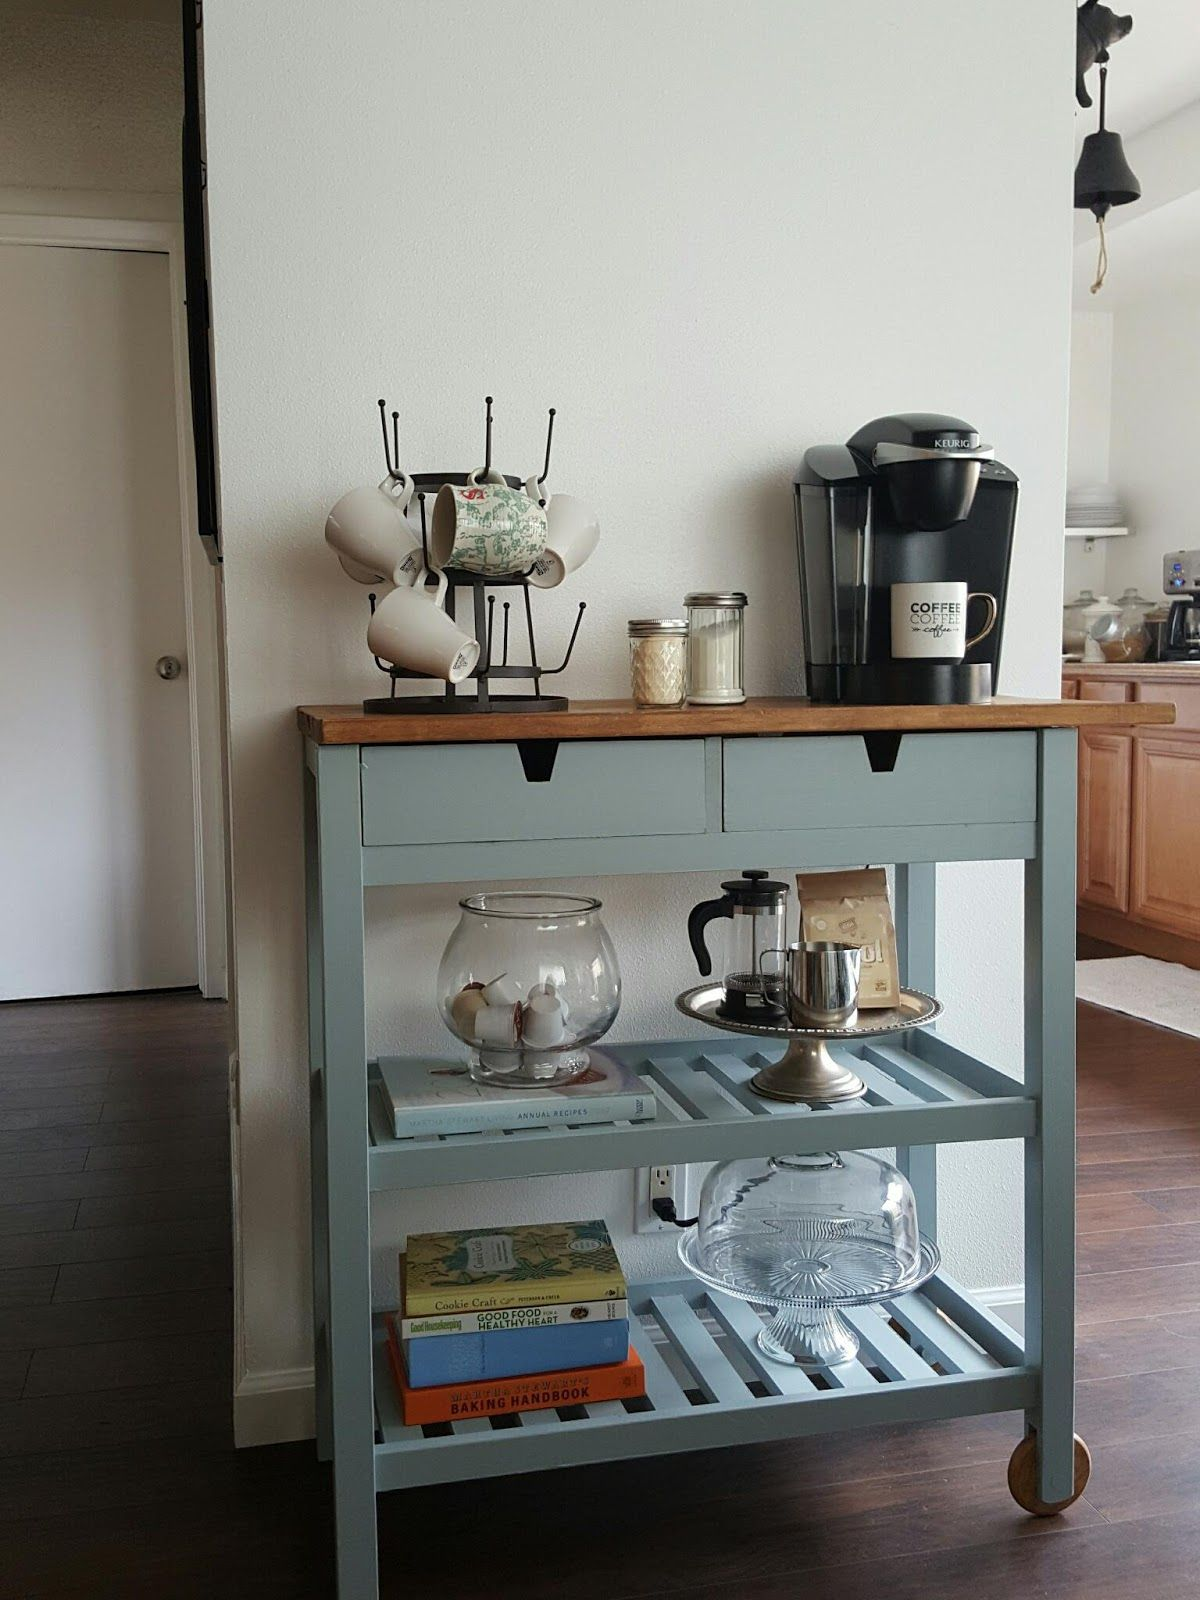 Ikea Küchen Ideen Pinterest Small Kitchen Carts Ideas The Kitchen Pinterest Küche Möbel